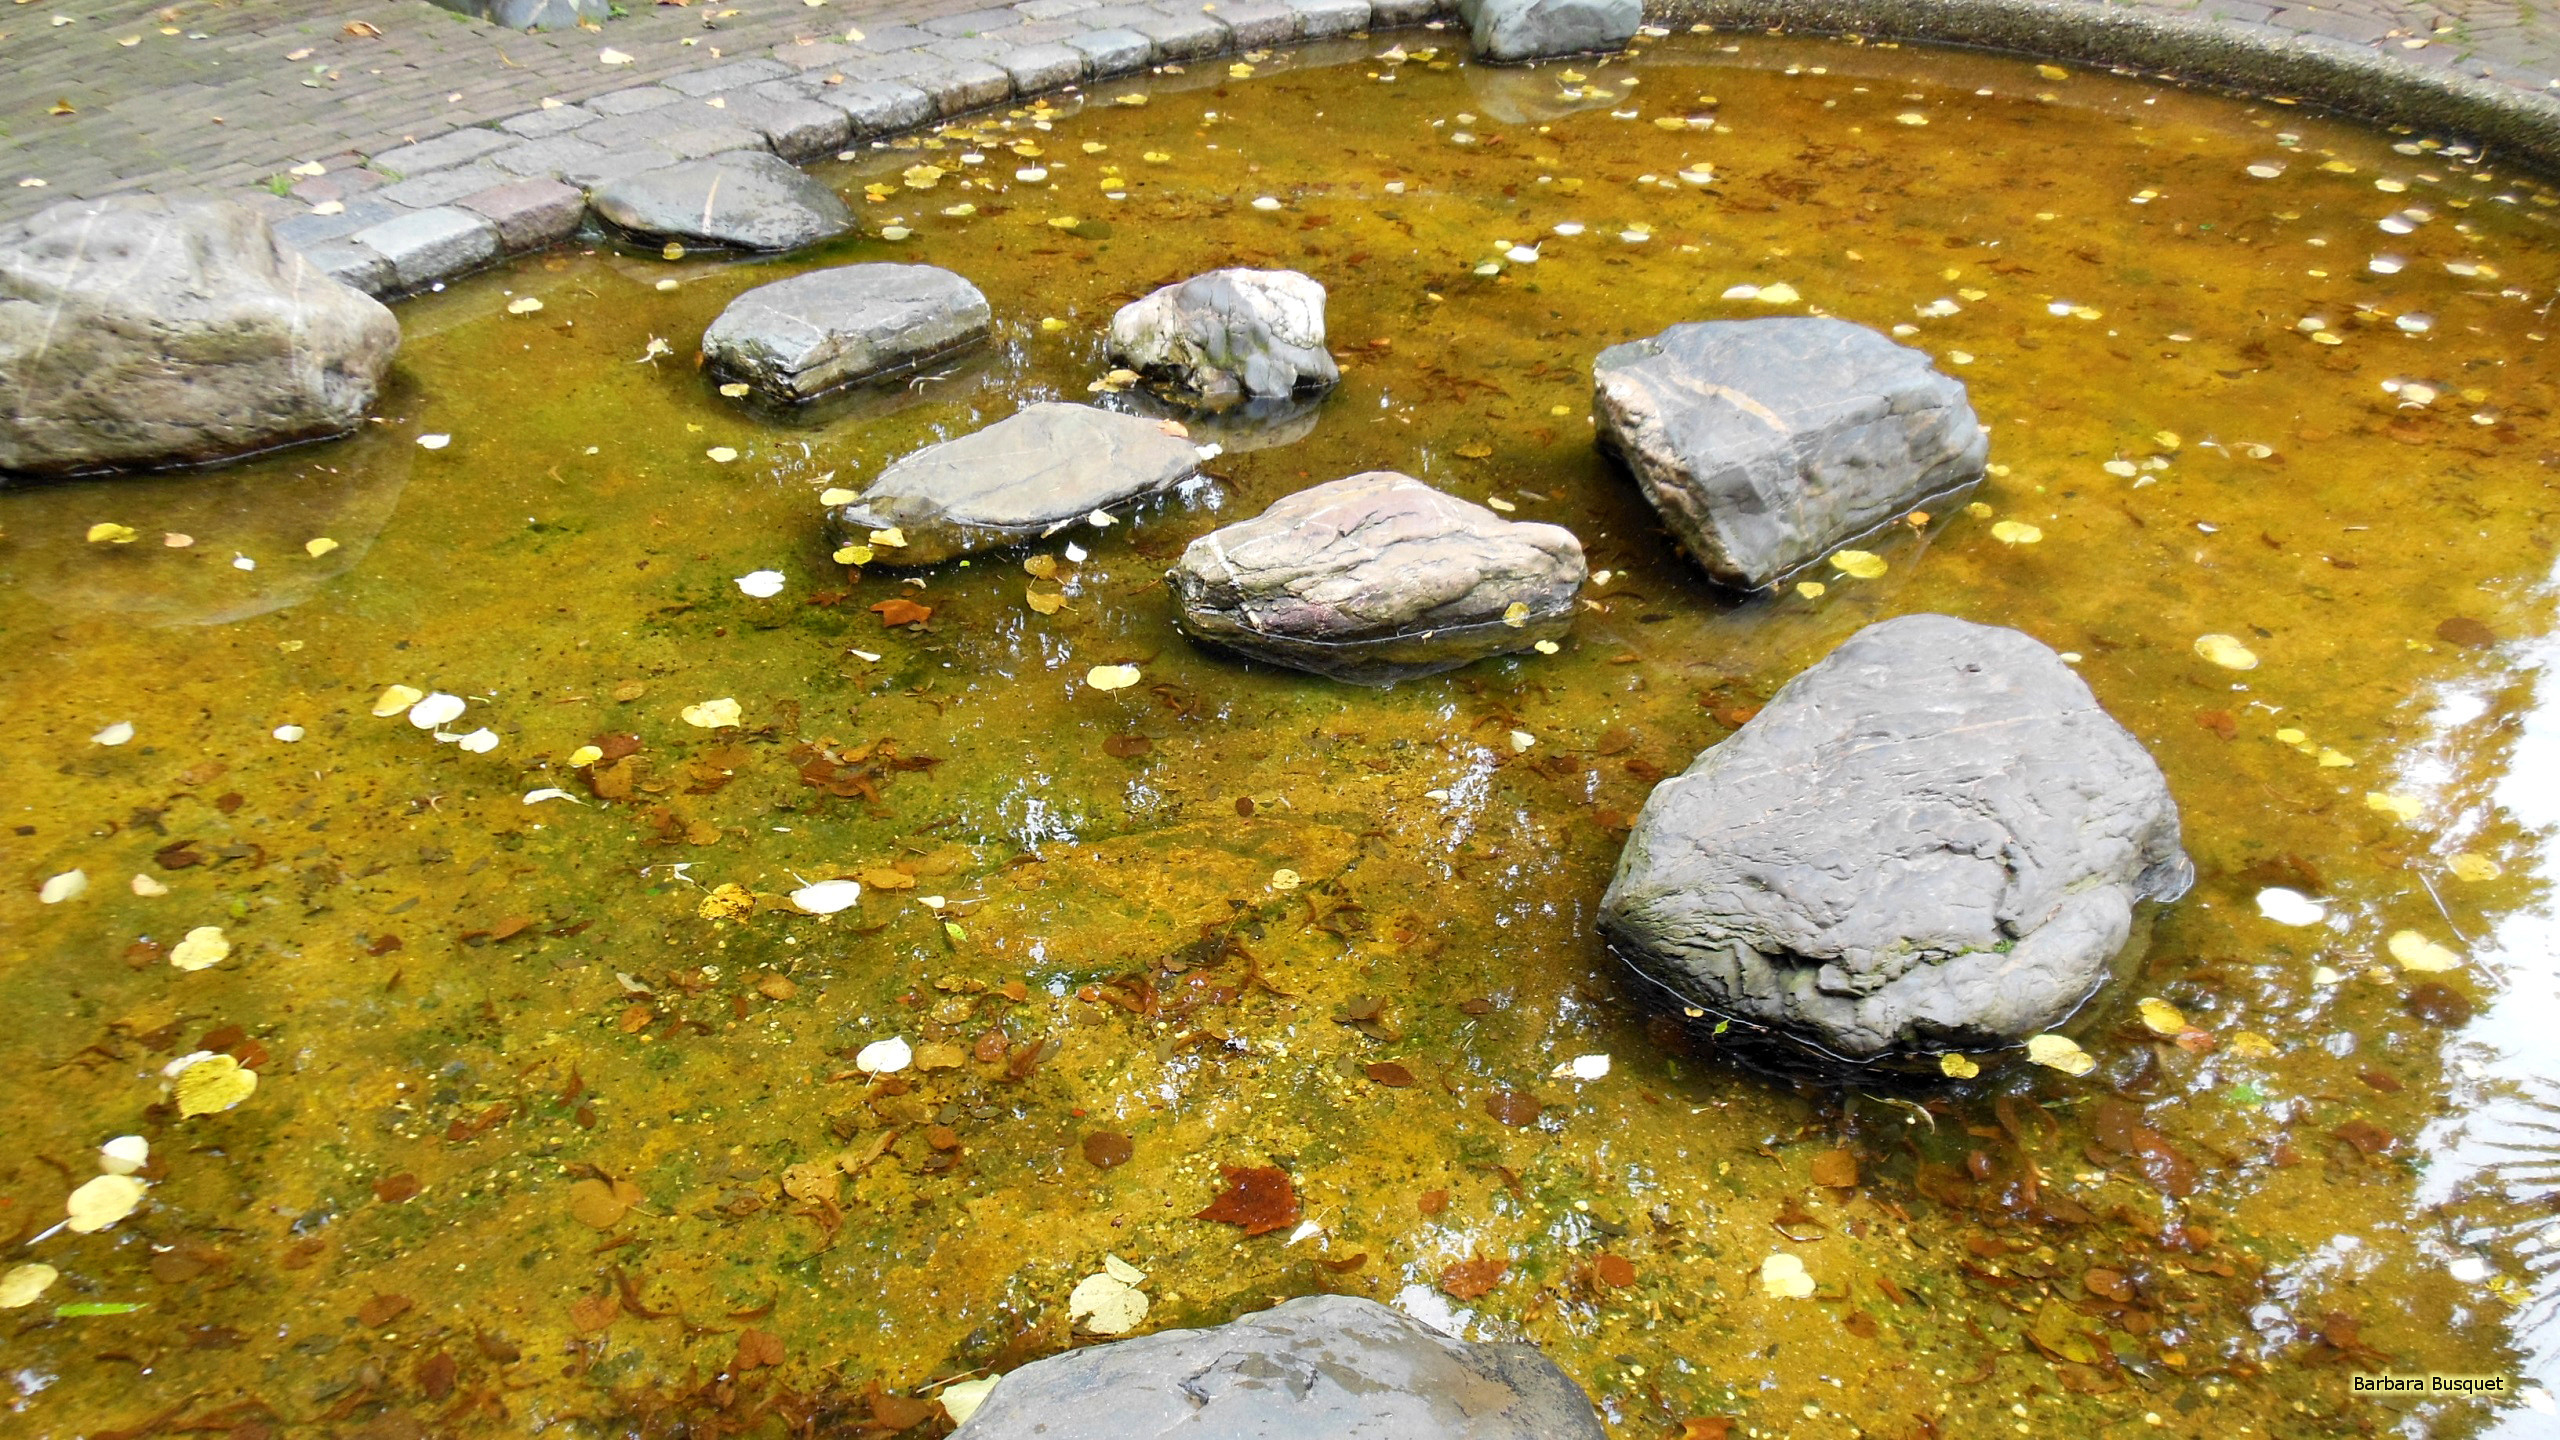 2560x1440 Pond with big rocks and leaves